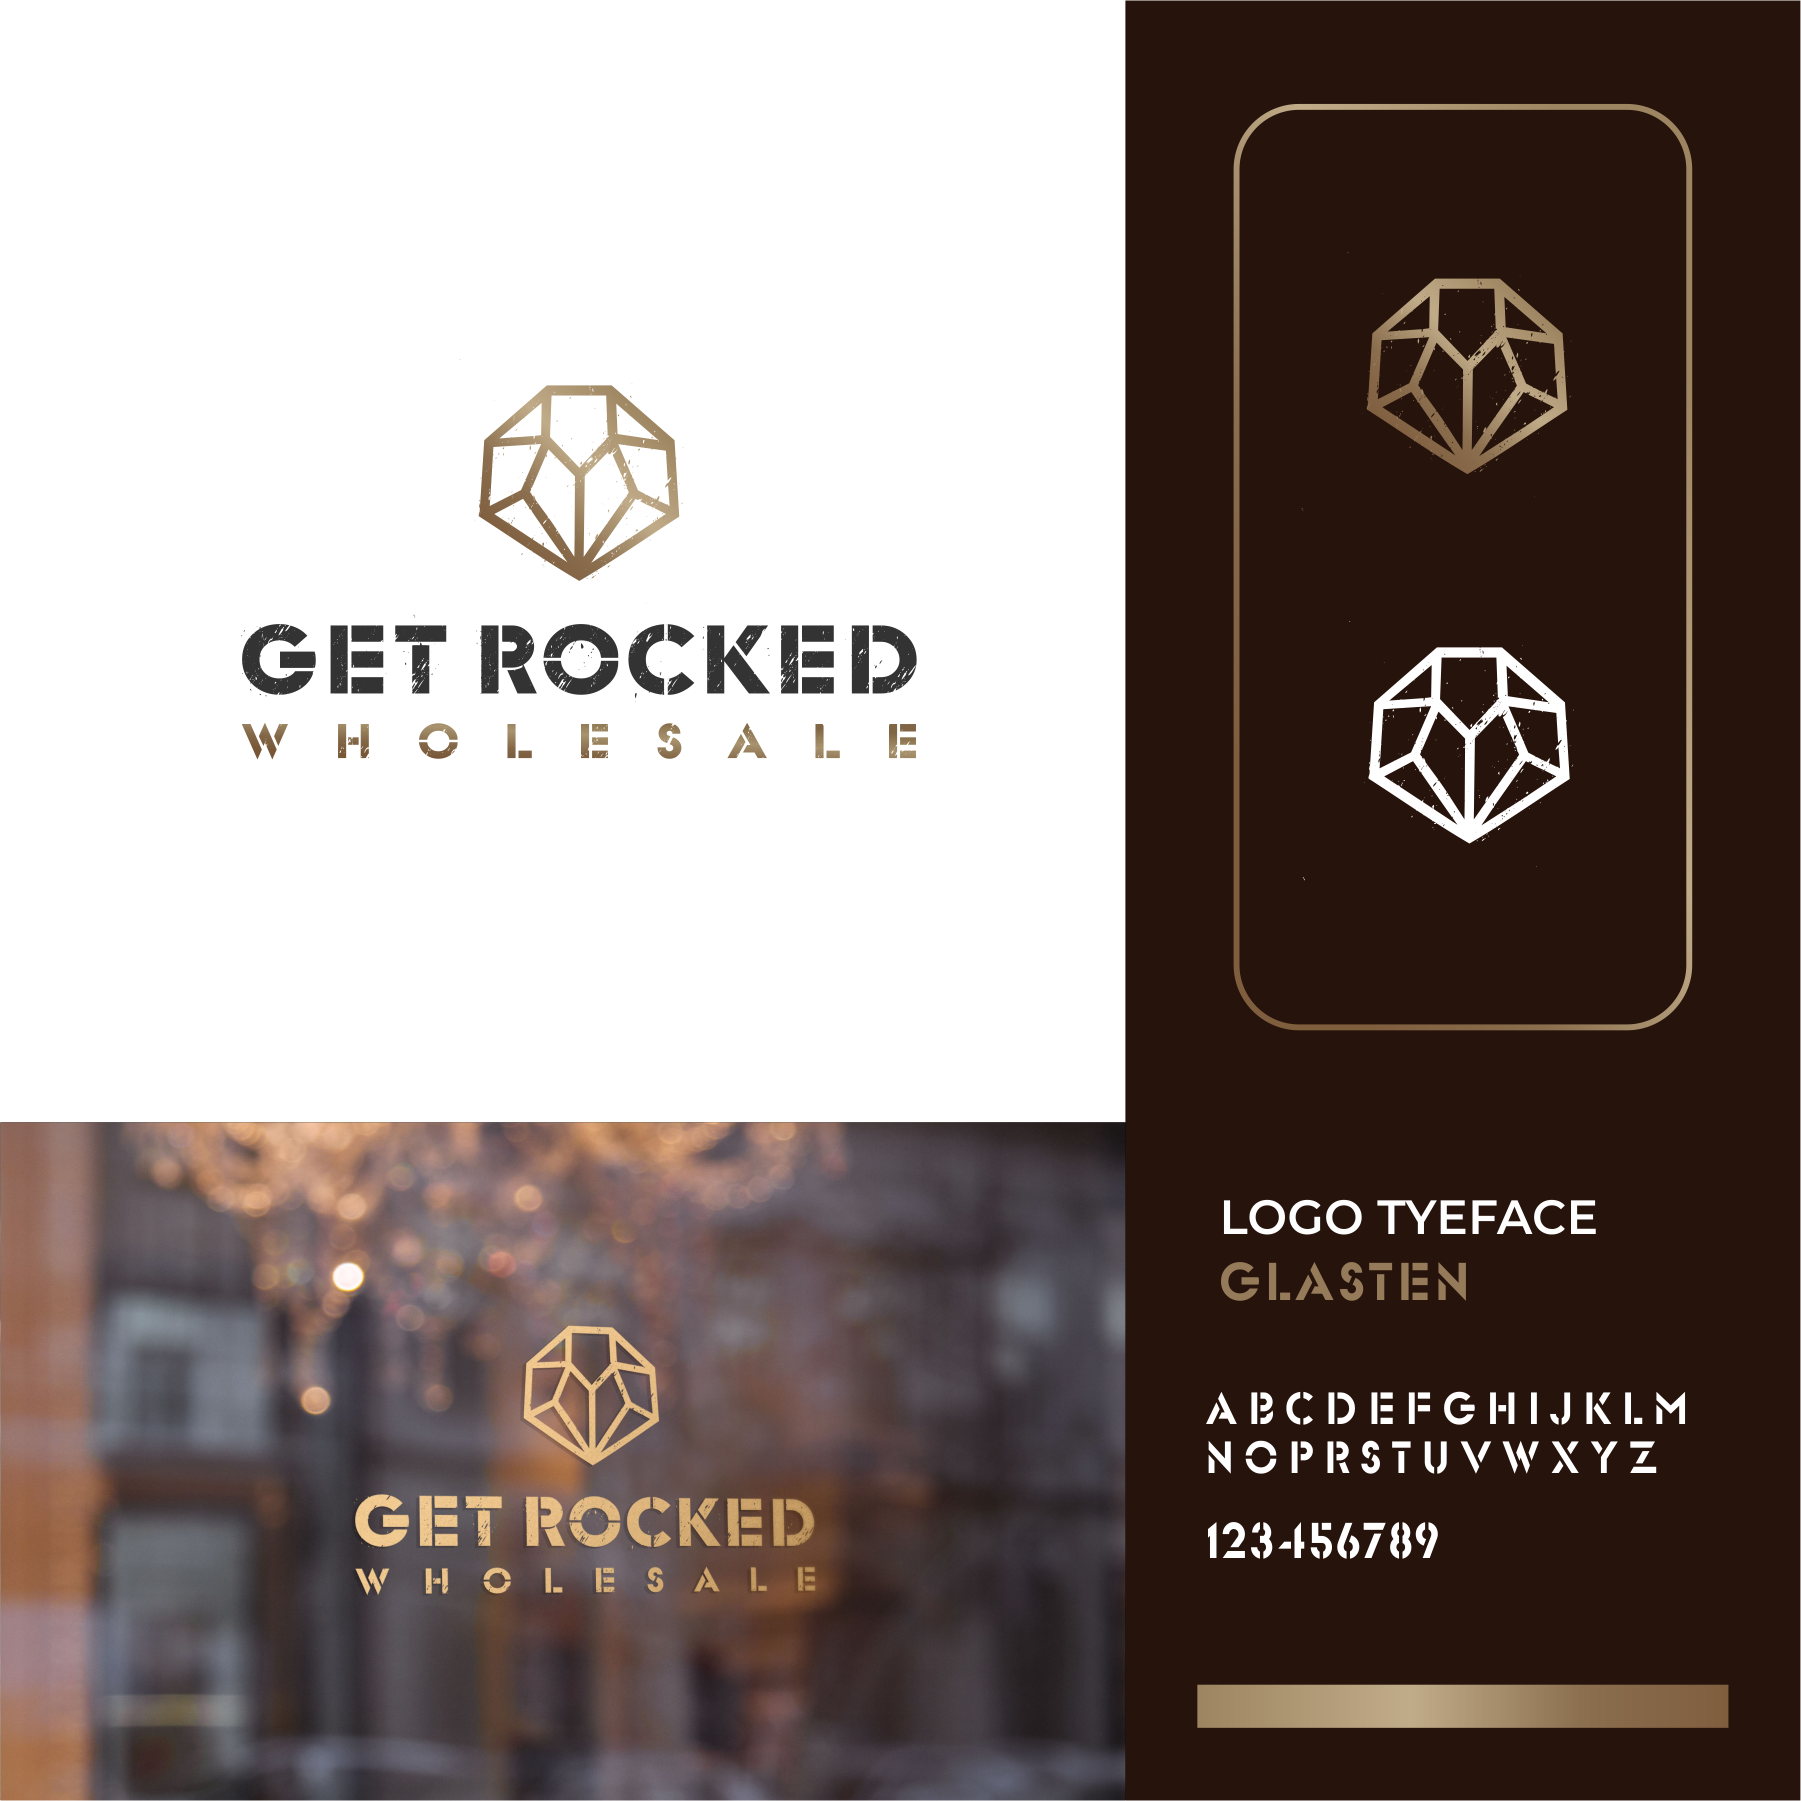 Up and Coming Crystal Wholesaler Looking for Urban feel with Logo